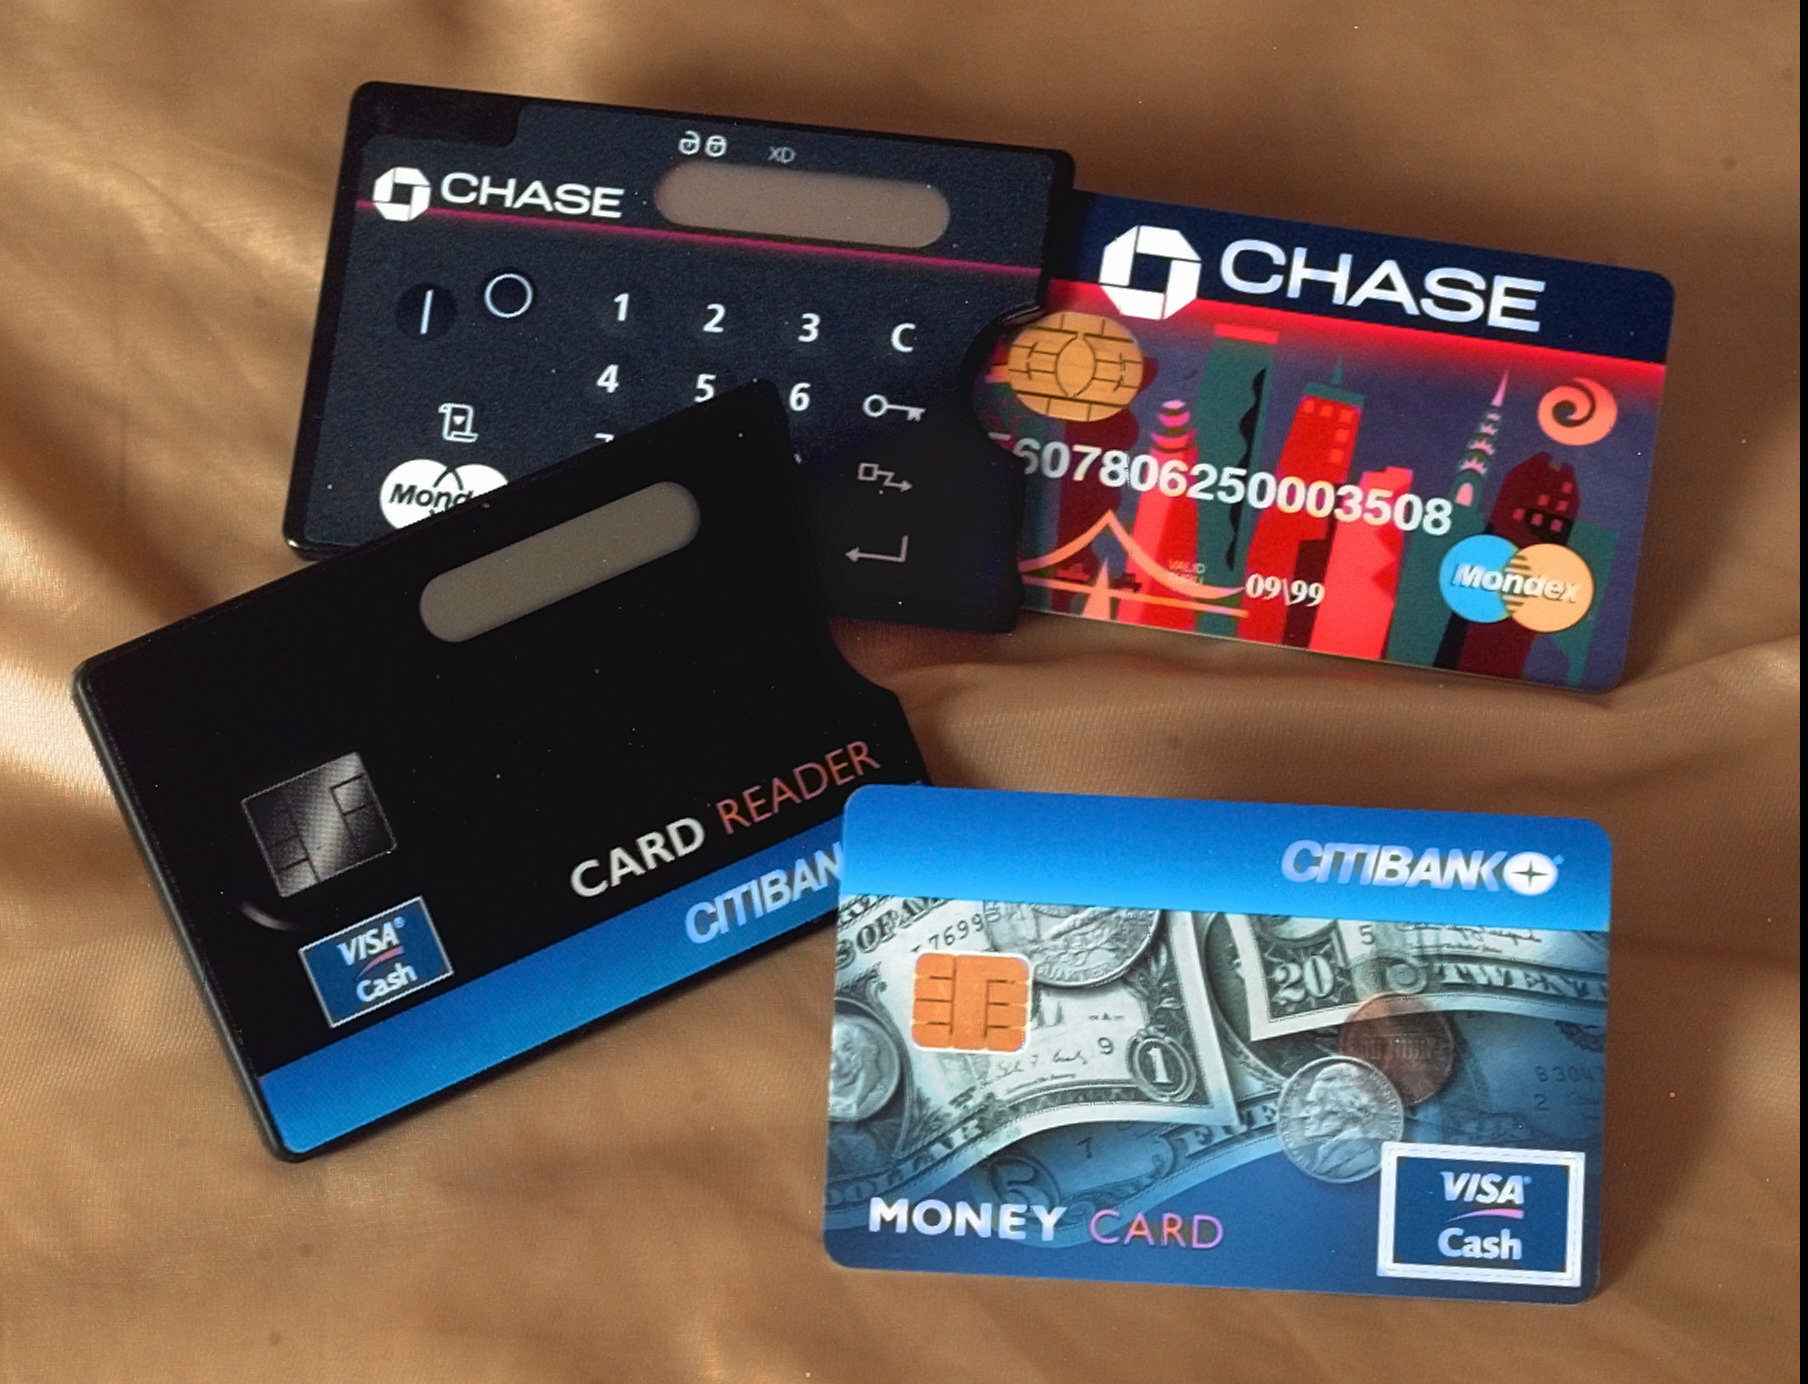 Chase Business Credit Card Reader Gallery - Card Design And Card ...